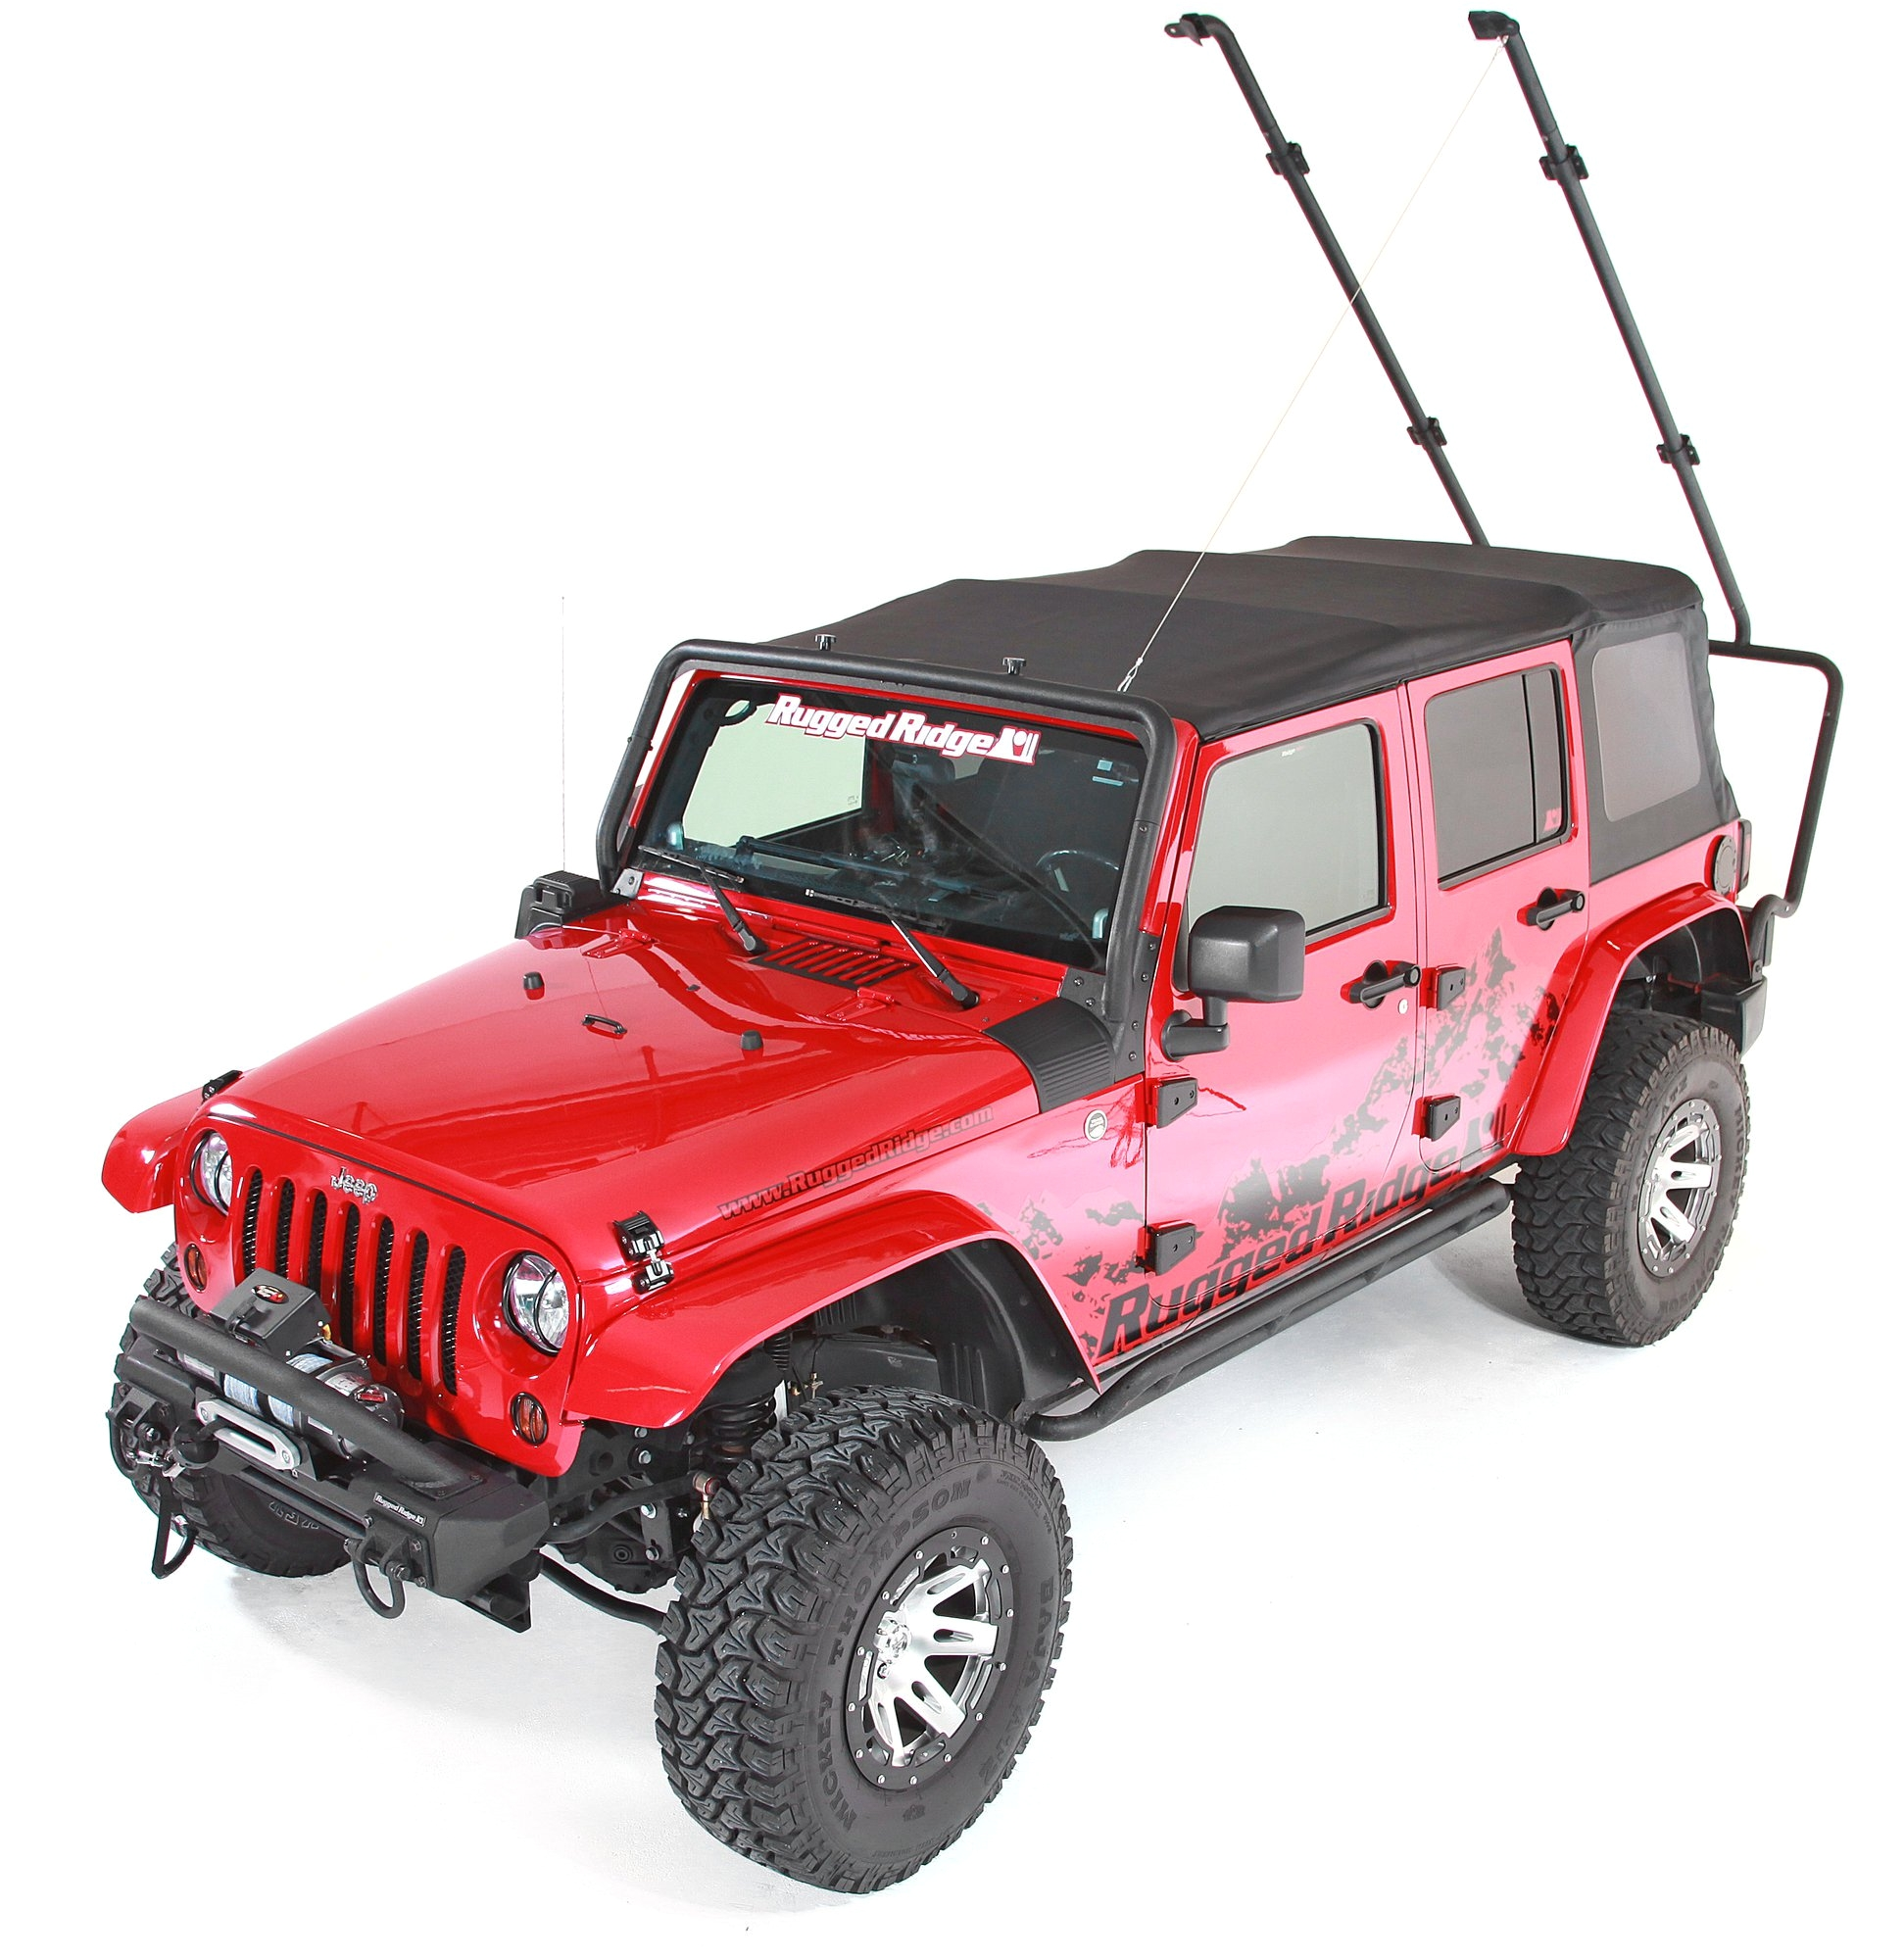 rugged ridge 11703 02 sherpa rack for 07 18 jeep wrangler unlimited jk 4 door quadratec